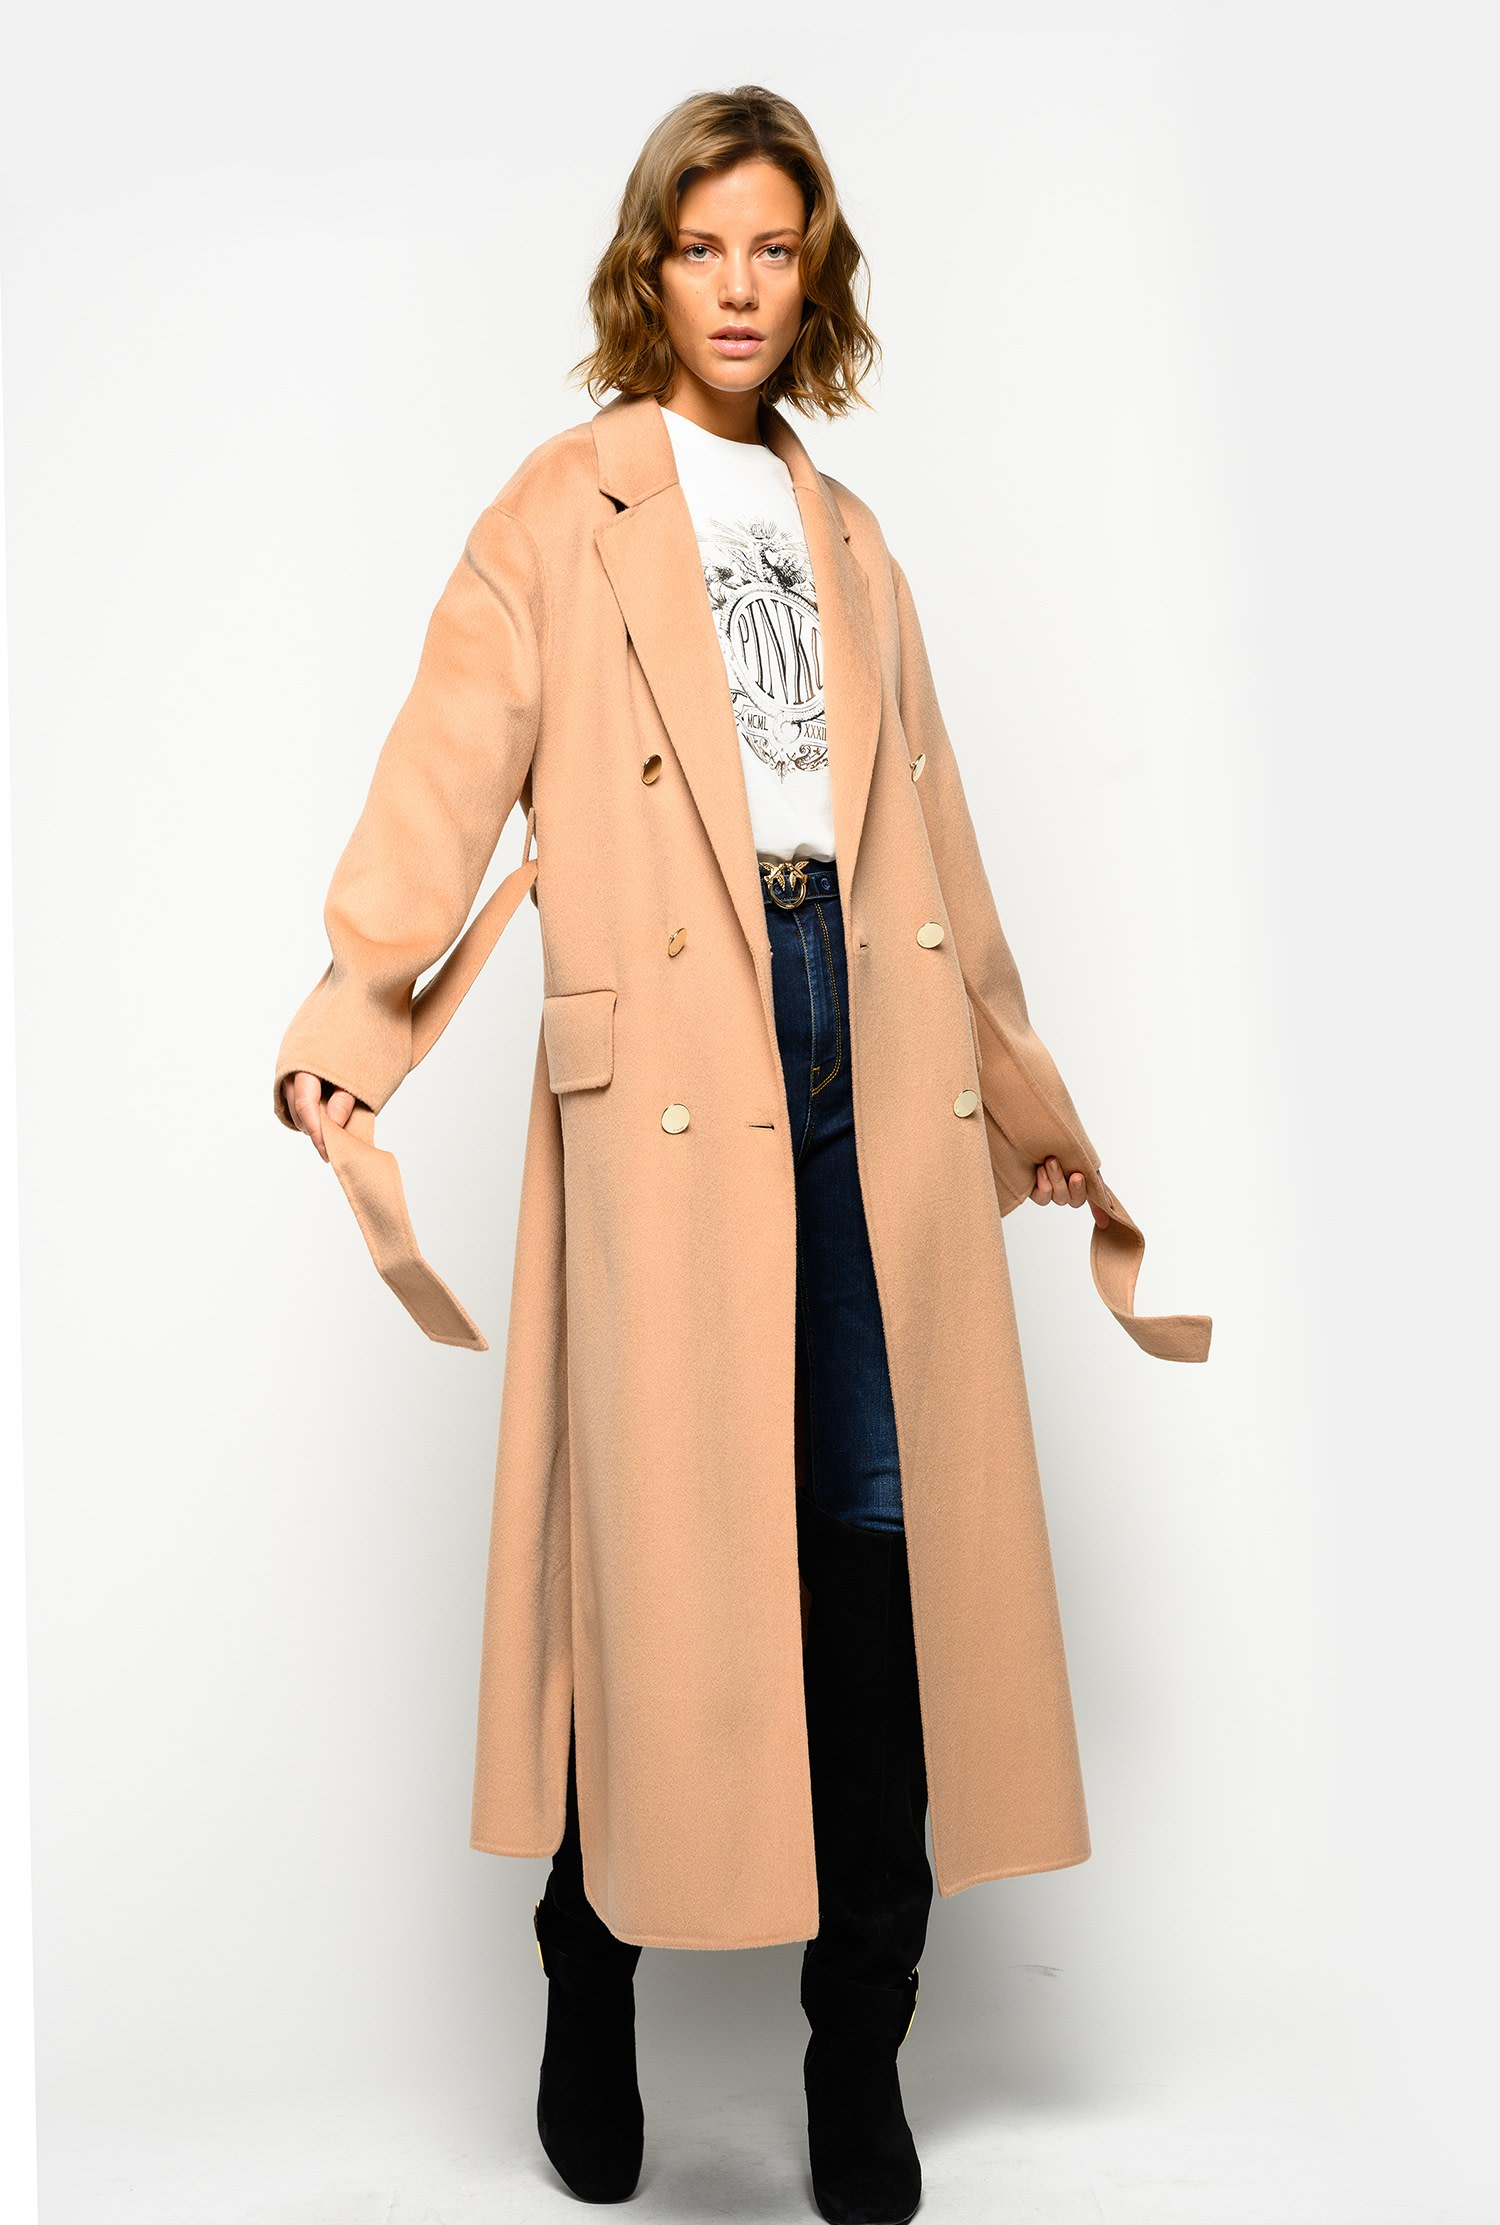 SHOPPING ON LINE PINKO CAPPOTTO LUNGO IN PANNO DOUBLE GIACOMO NEW COLLECTION WOMEN'S FALL WINTER 2020/21